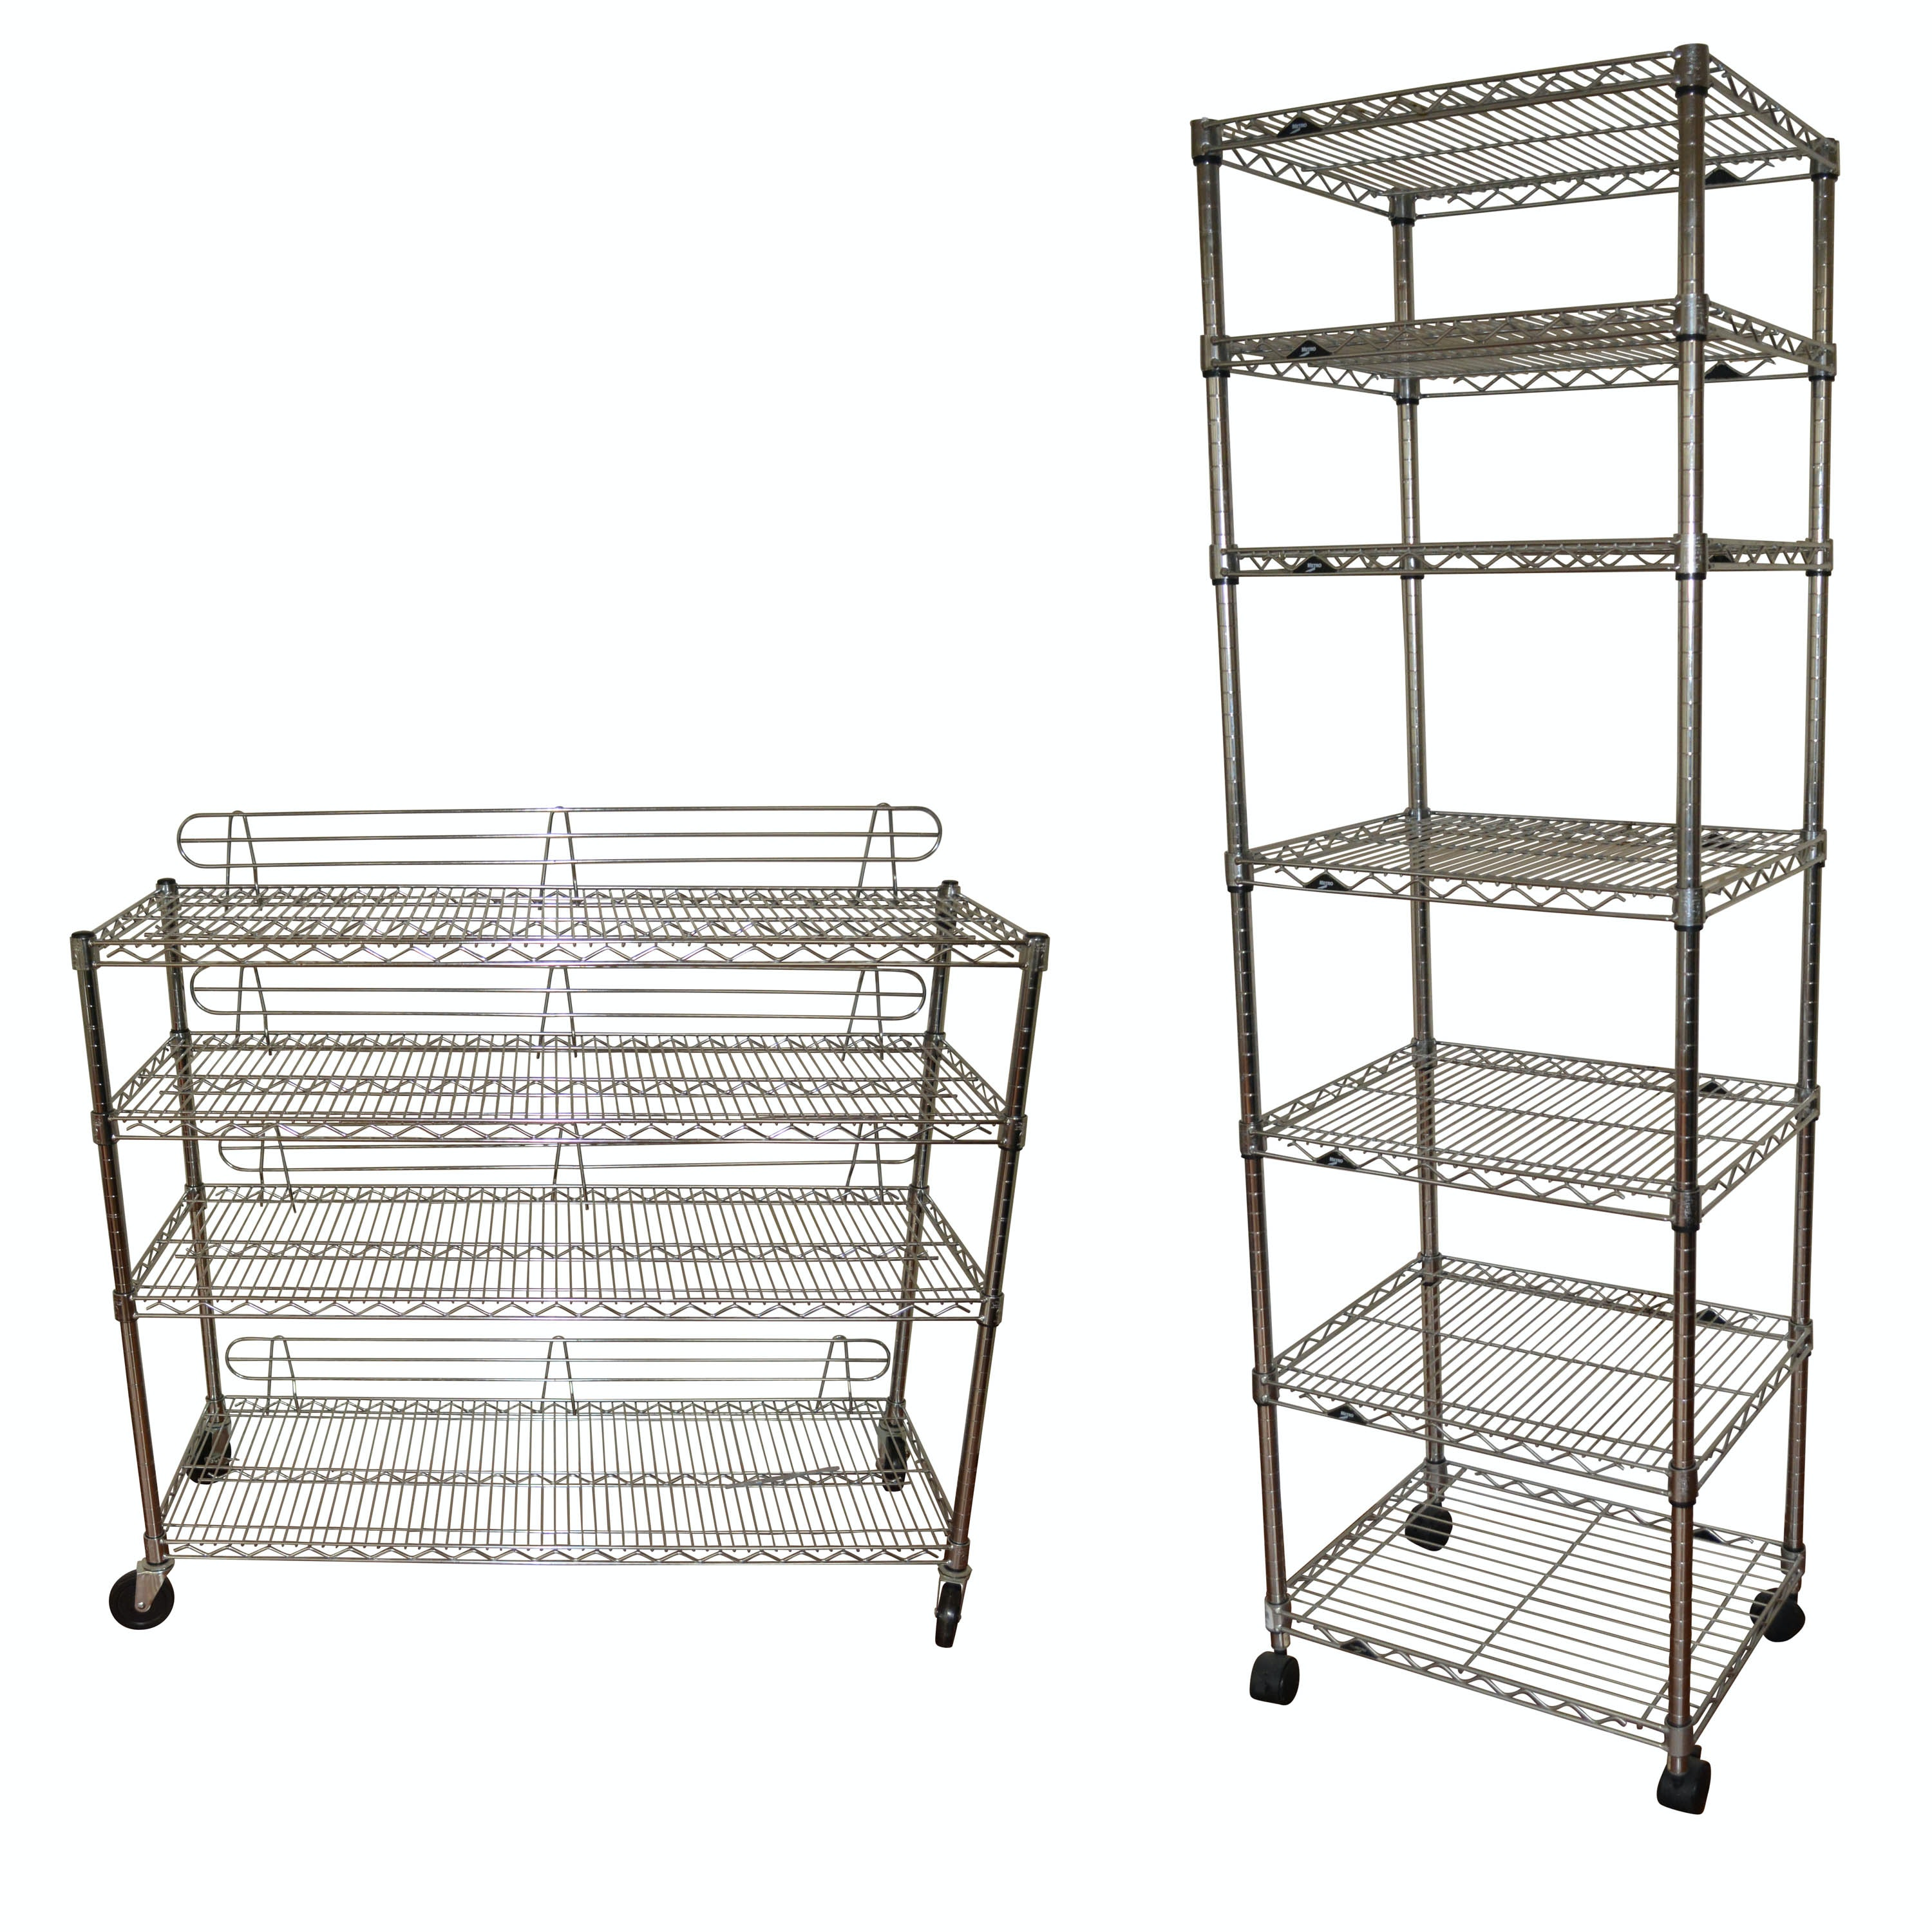 Pair of Metro Wire Rolling Shelving Units